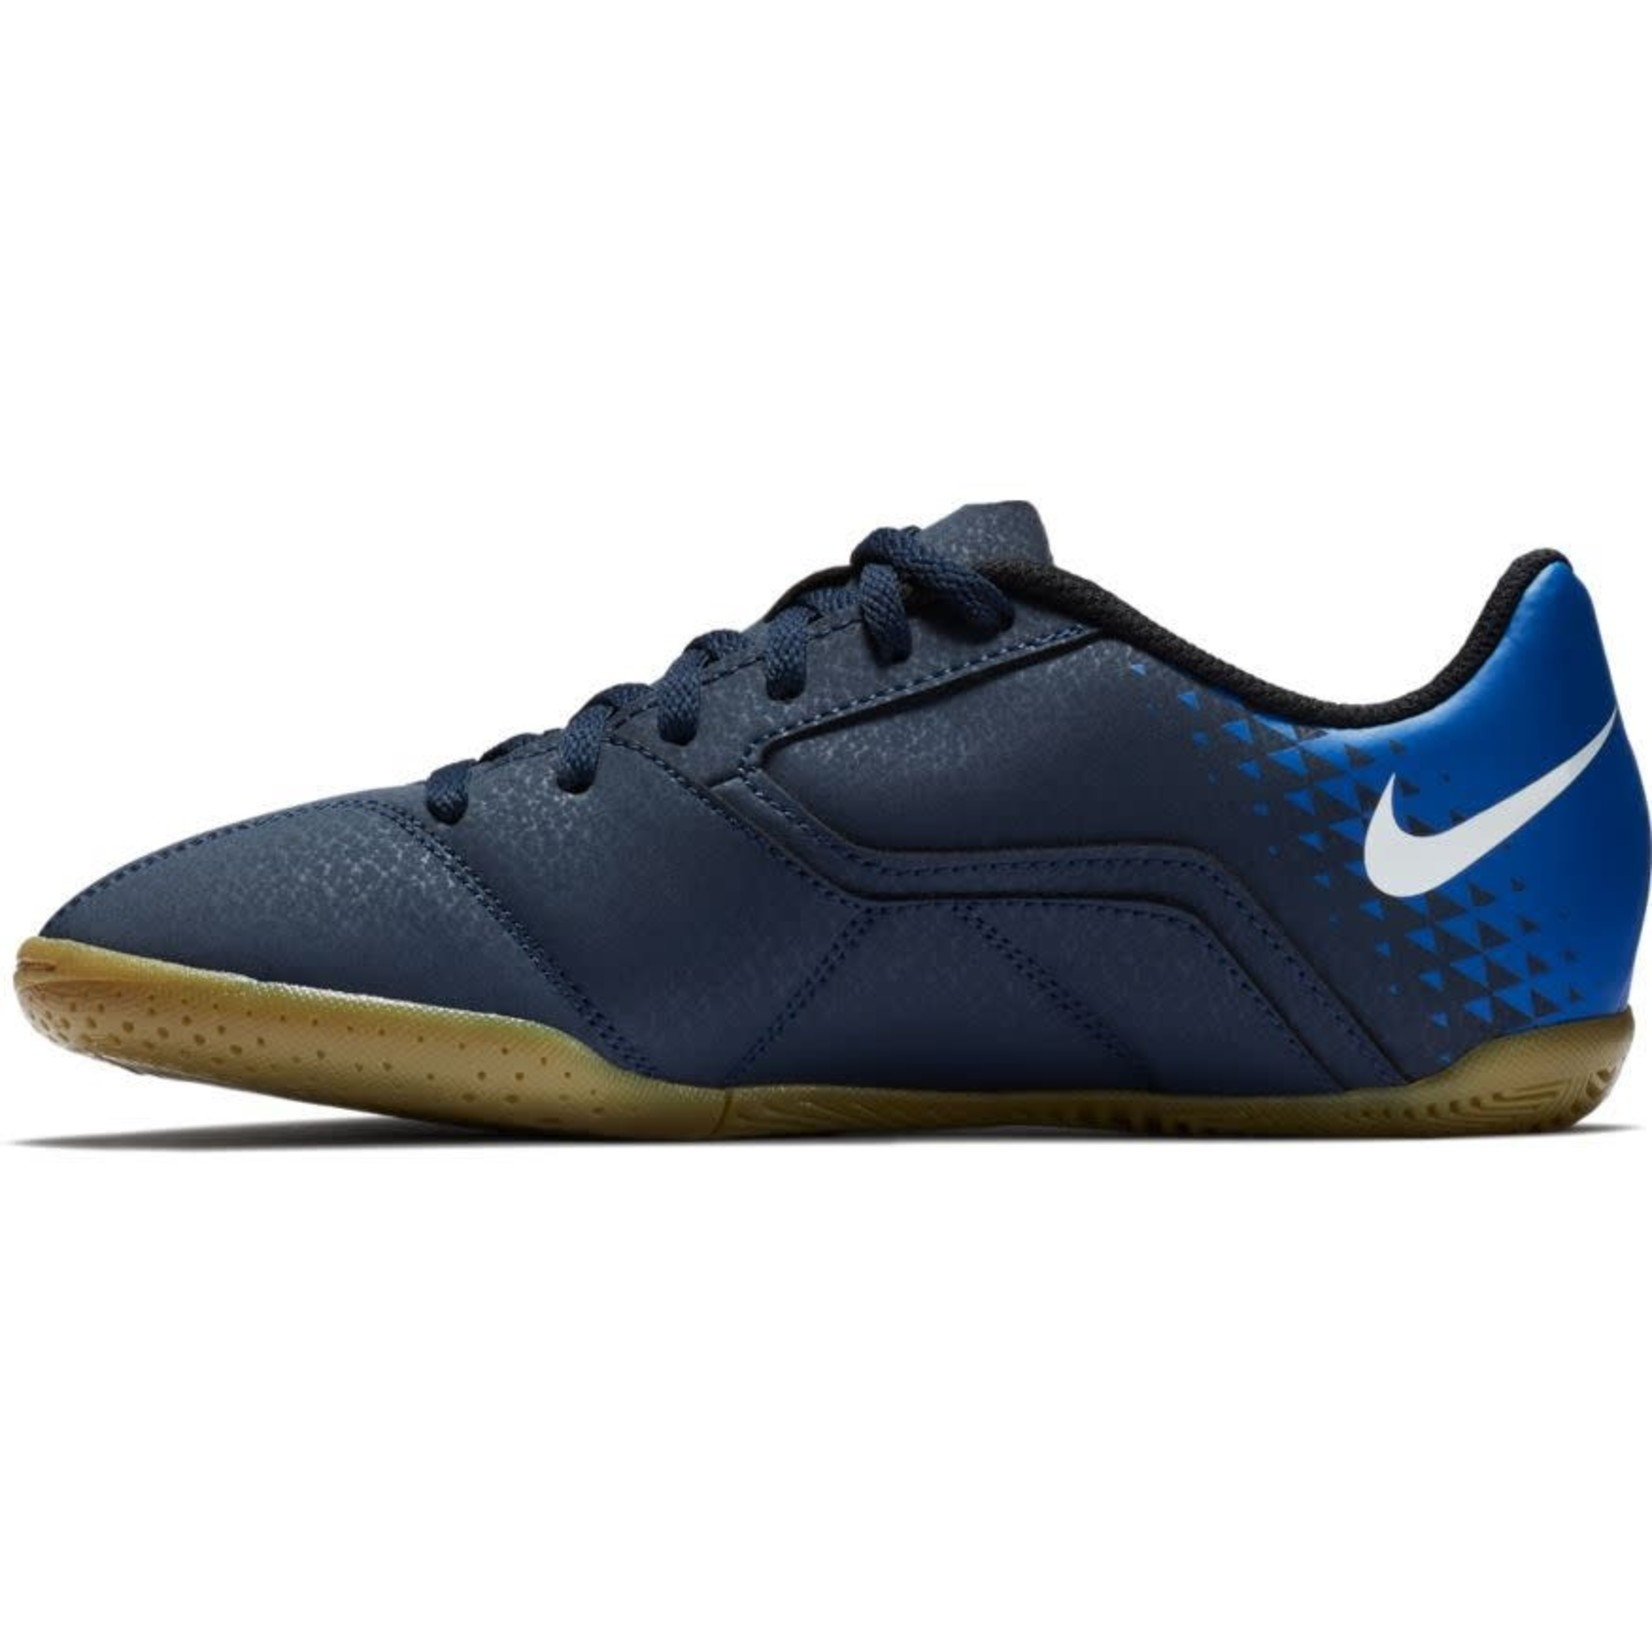 NIKE BOMBAX IC JR (NAVY)